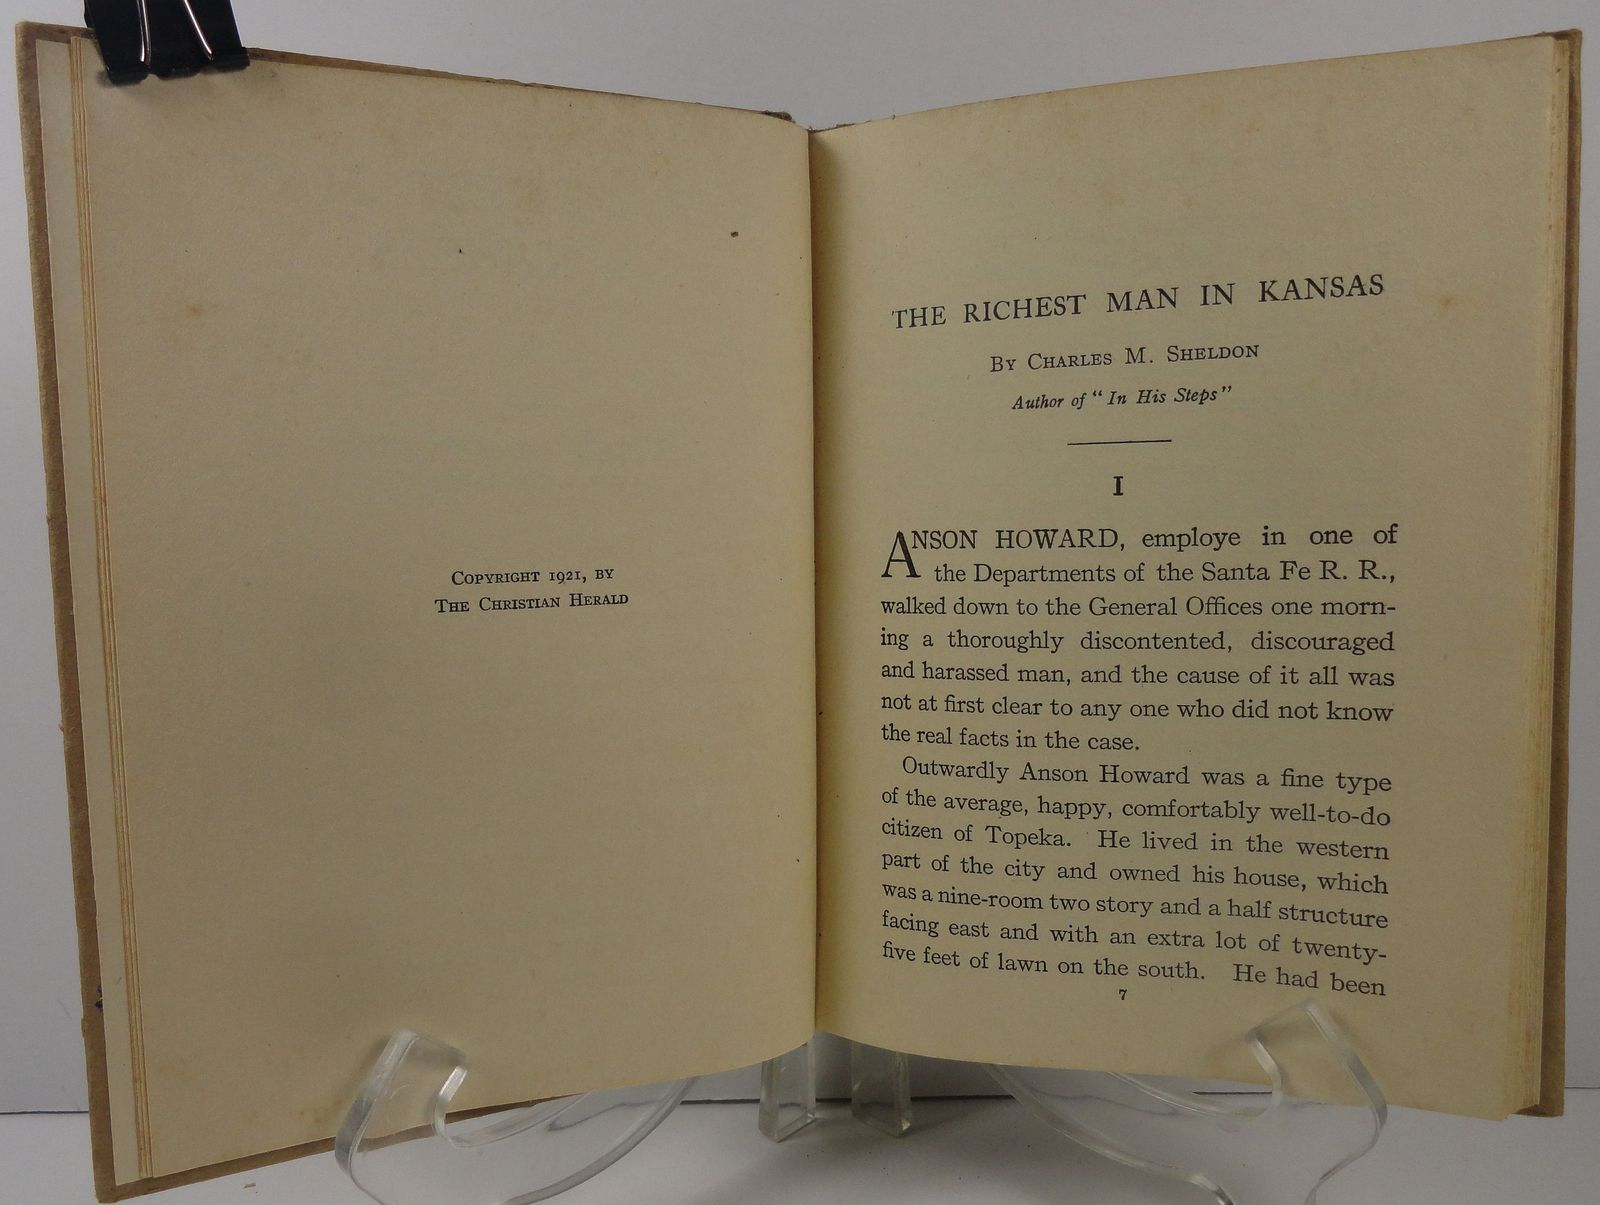 The Richest Man in Kansas by Charles M. Sheldon 1921